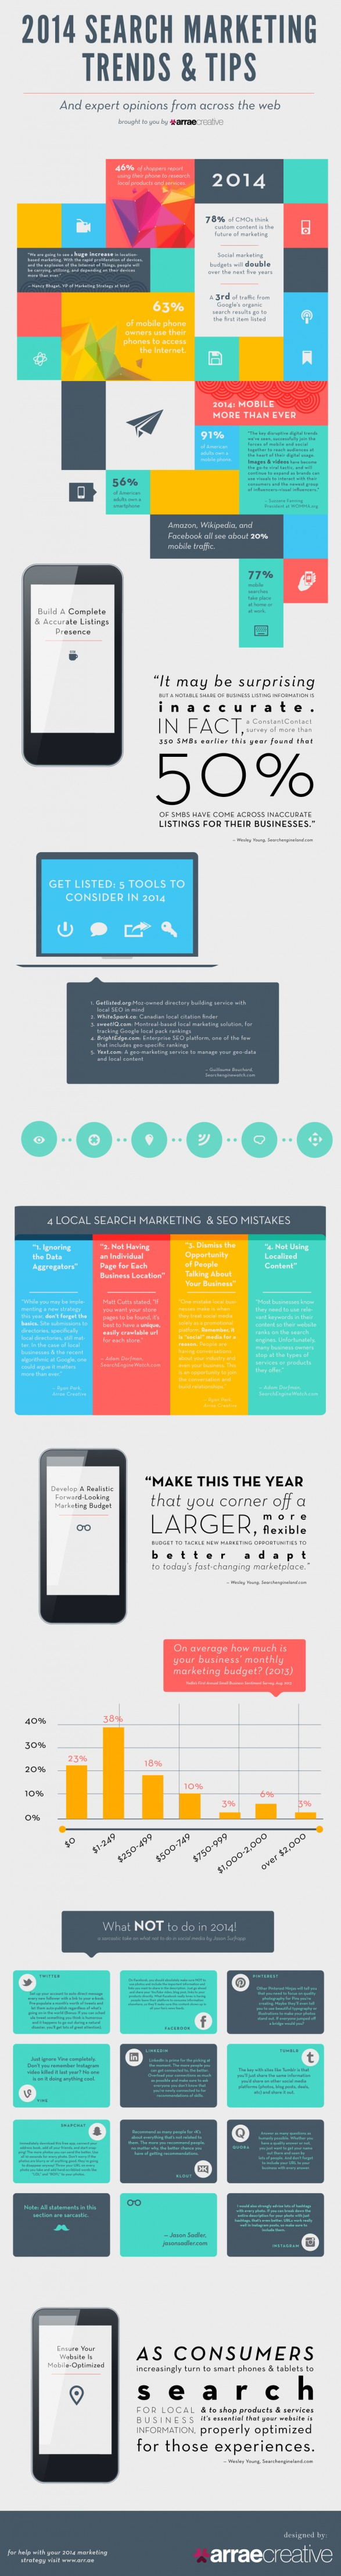 Il digital marketing nel 2014